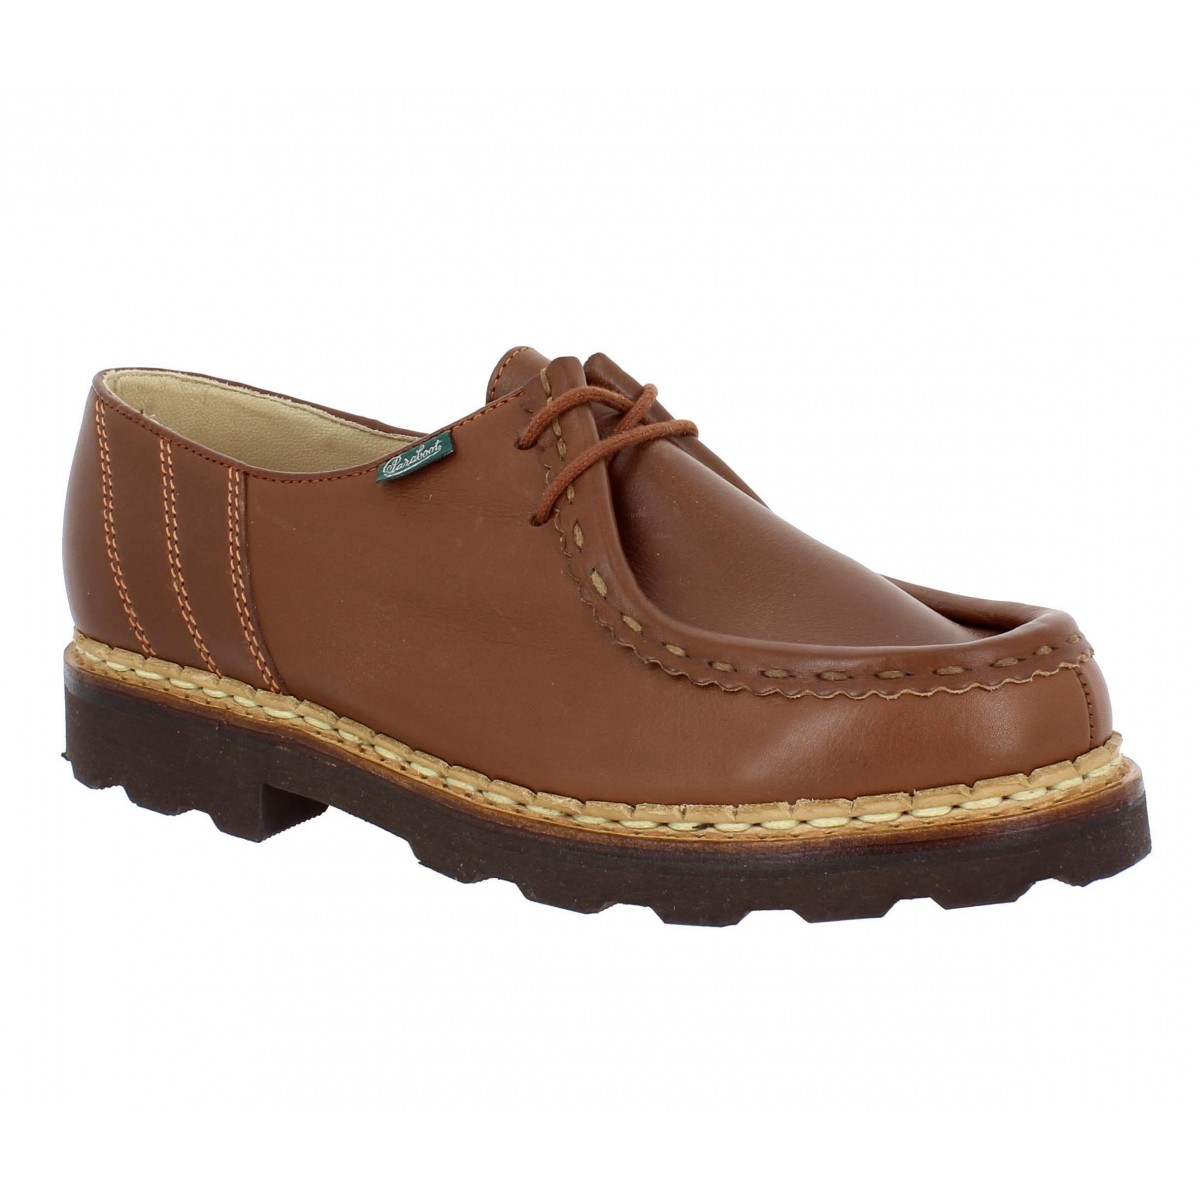 Paraboot Morzine Cuir Homme Marron Fanny Chaussures